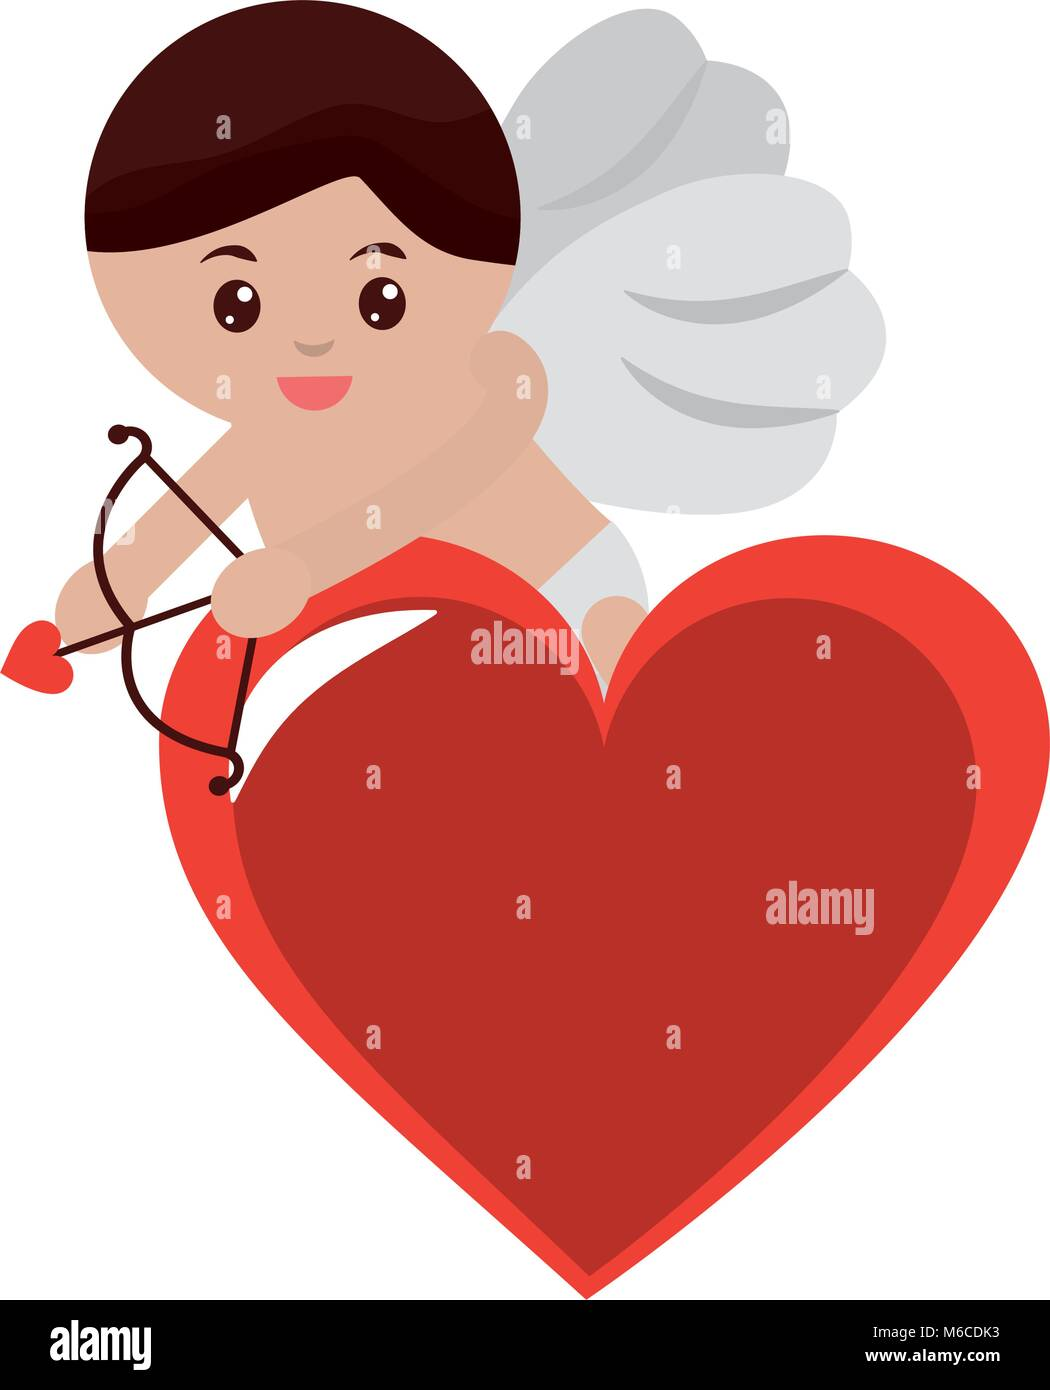 Cupid Holding Bow And Arrow On Heart Valentines Day Icon Image Stock